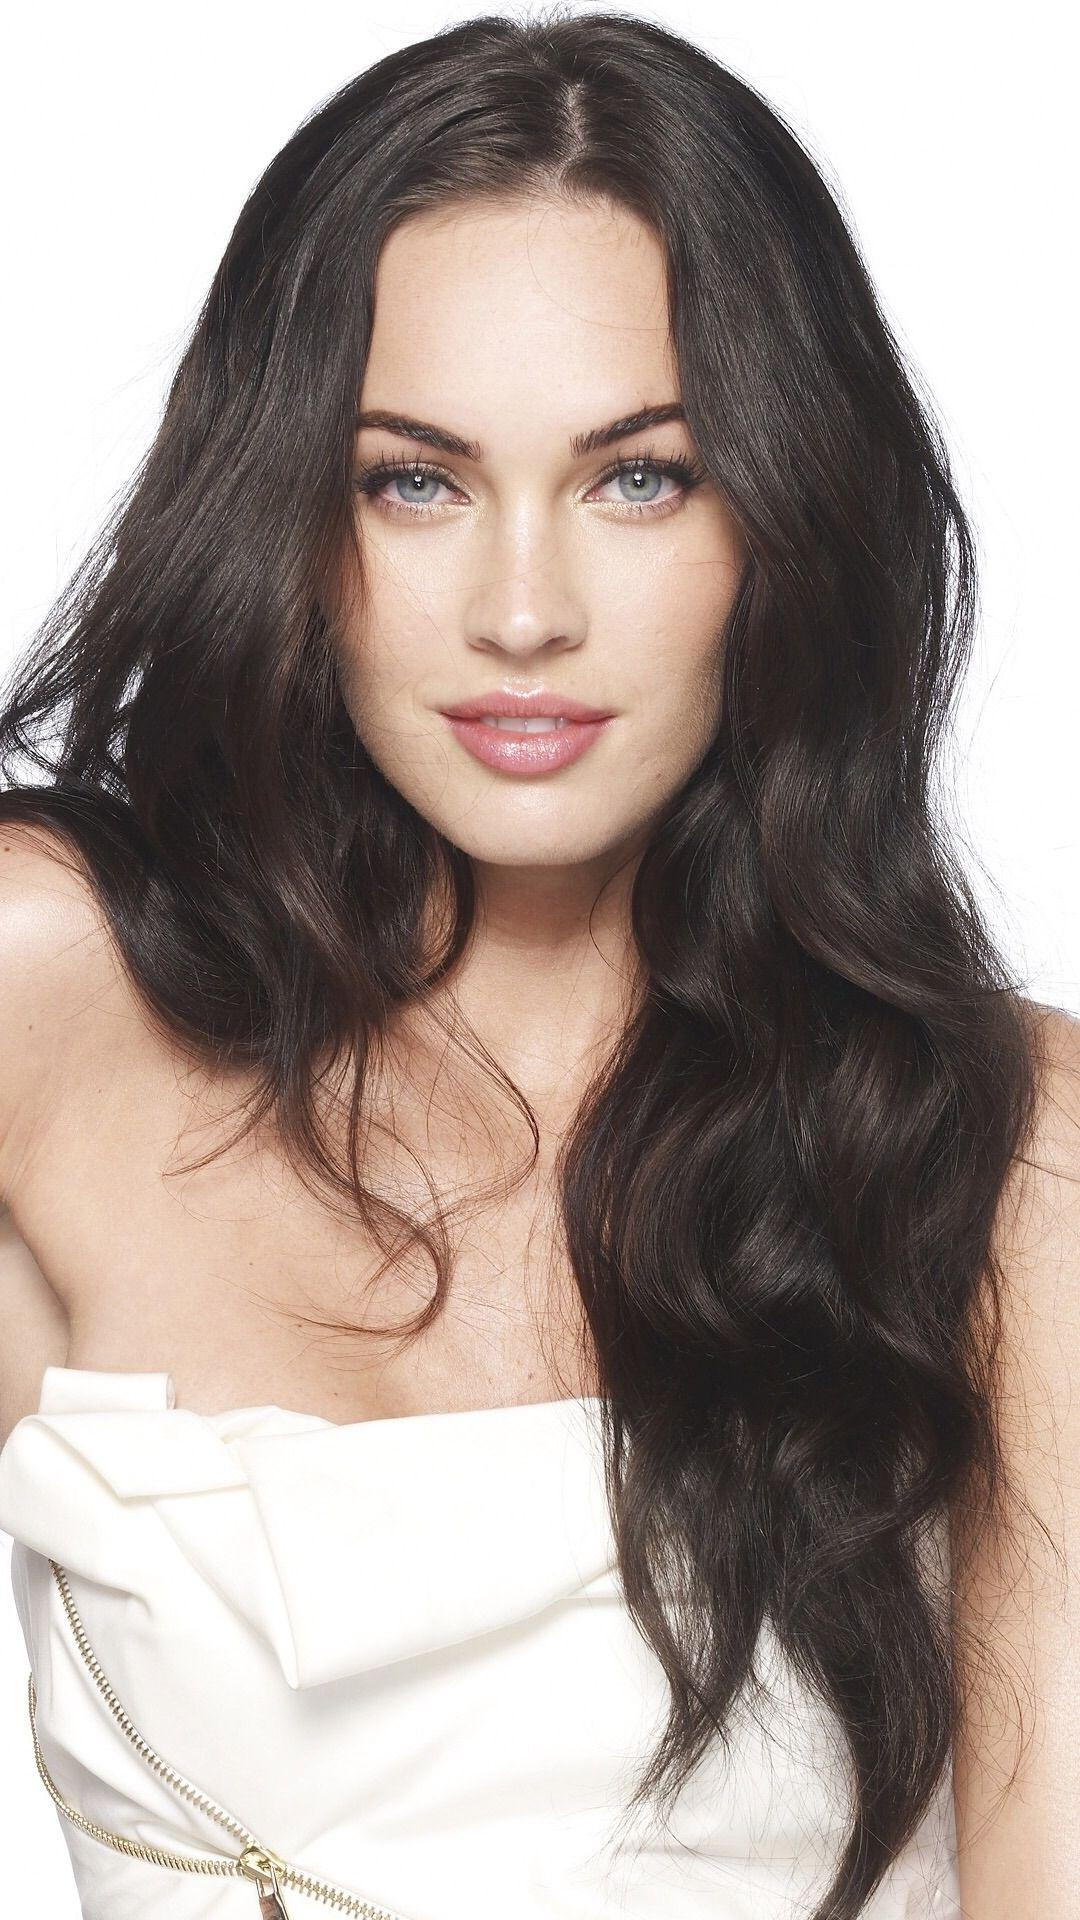 megan fox wallpapers iphone 5 - wallpaper cave